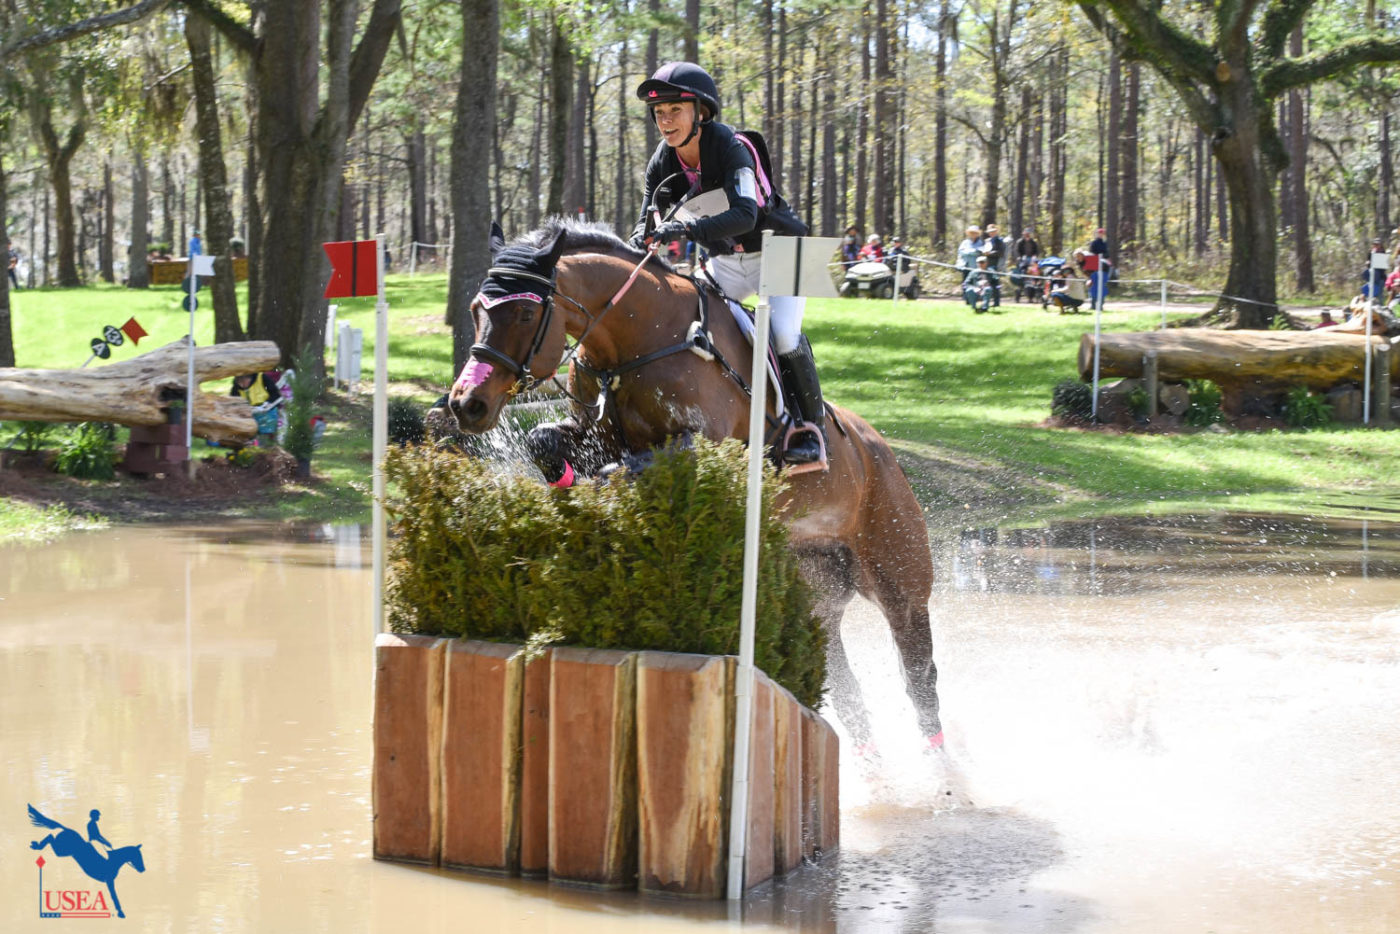 Charlotte Collier having so much fun with Clifford M, sitting in 10th place. USEA/Kate Lokey photo.